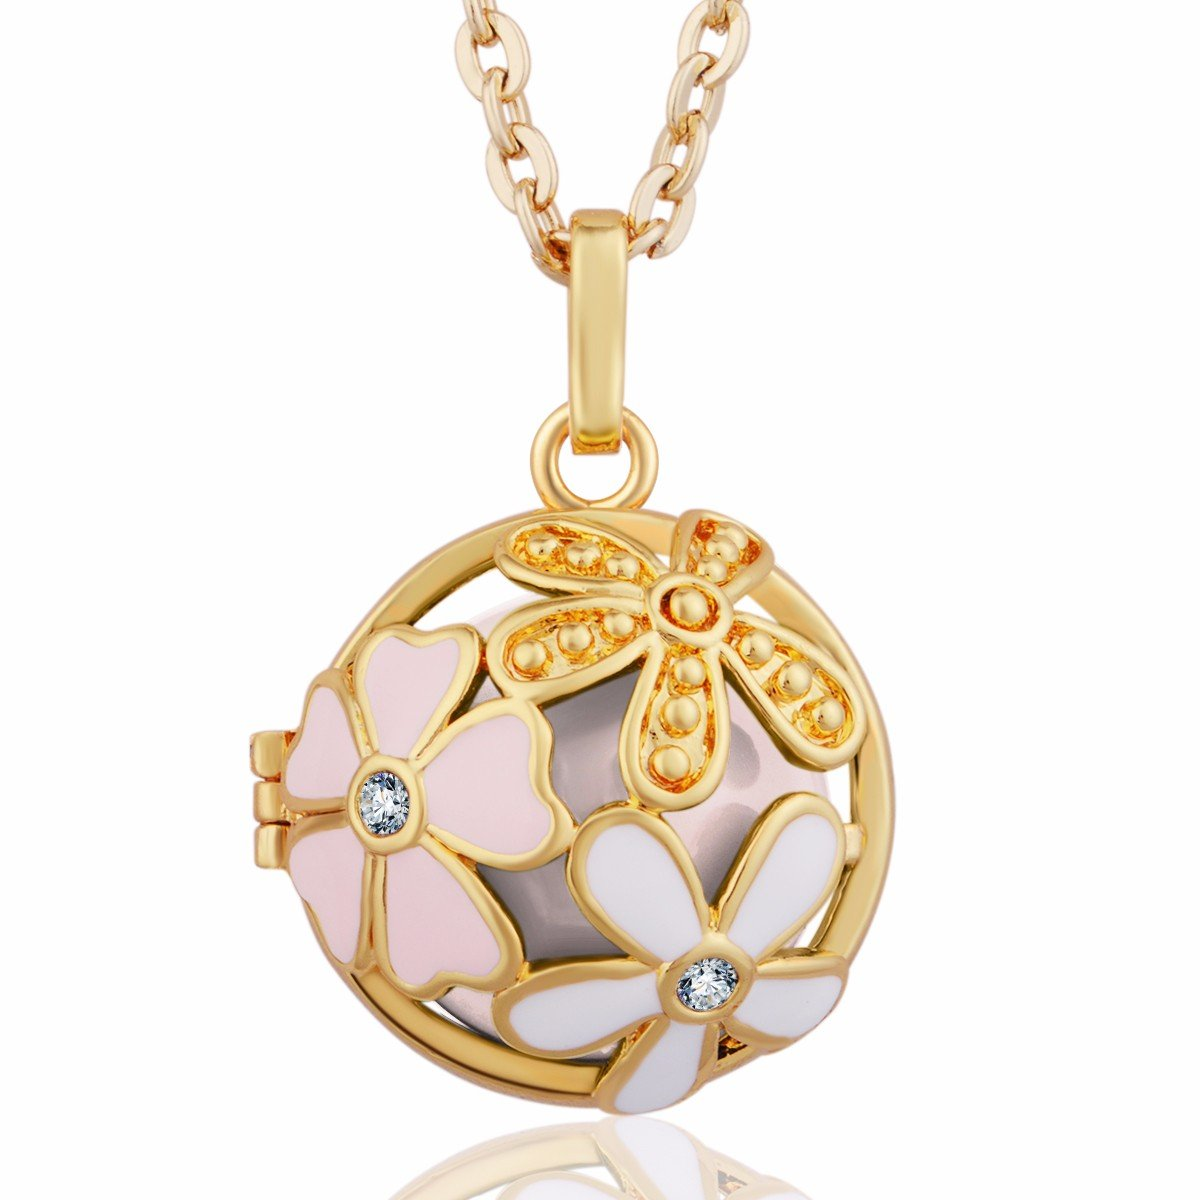 Eudora Harmony Bola Summer Flower 20mm Musical Chime Bell Pendant 30 inches Necklace Gold Plated